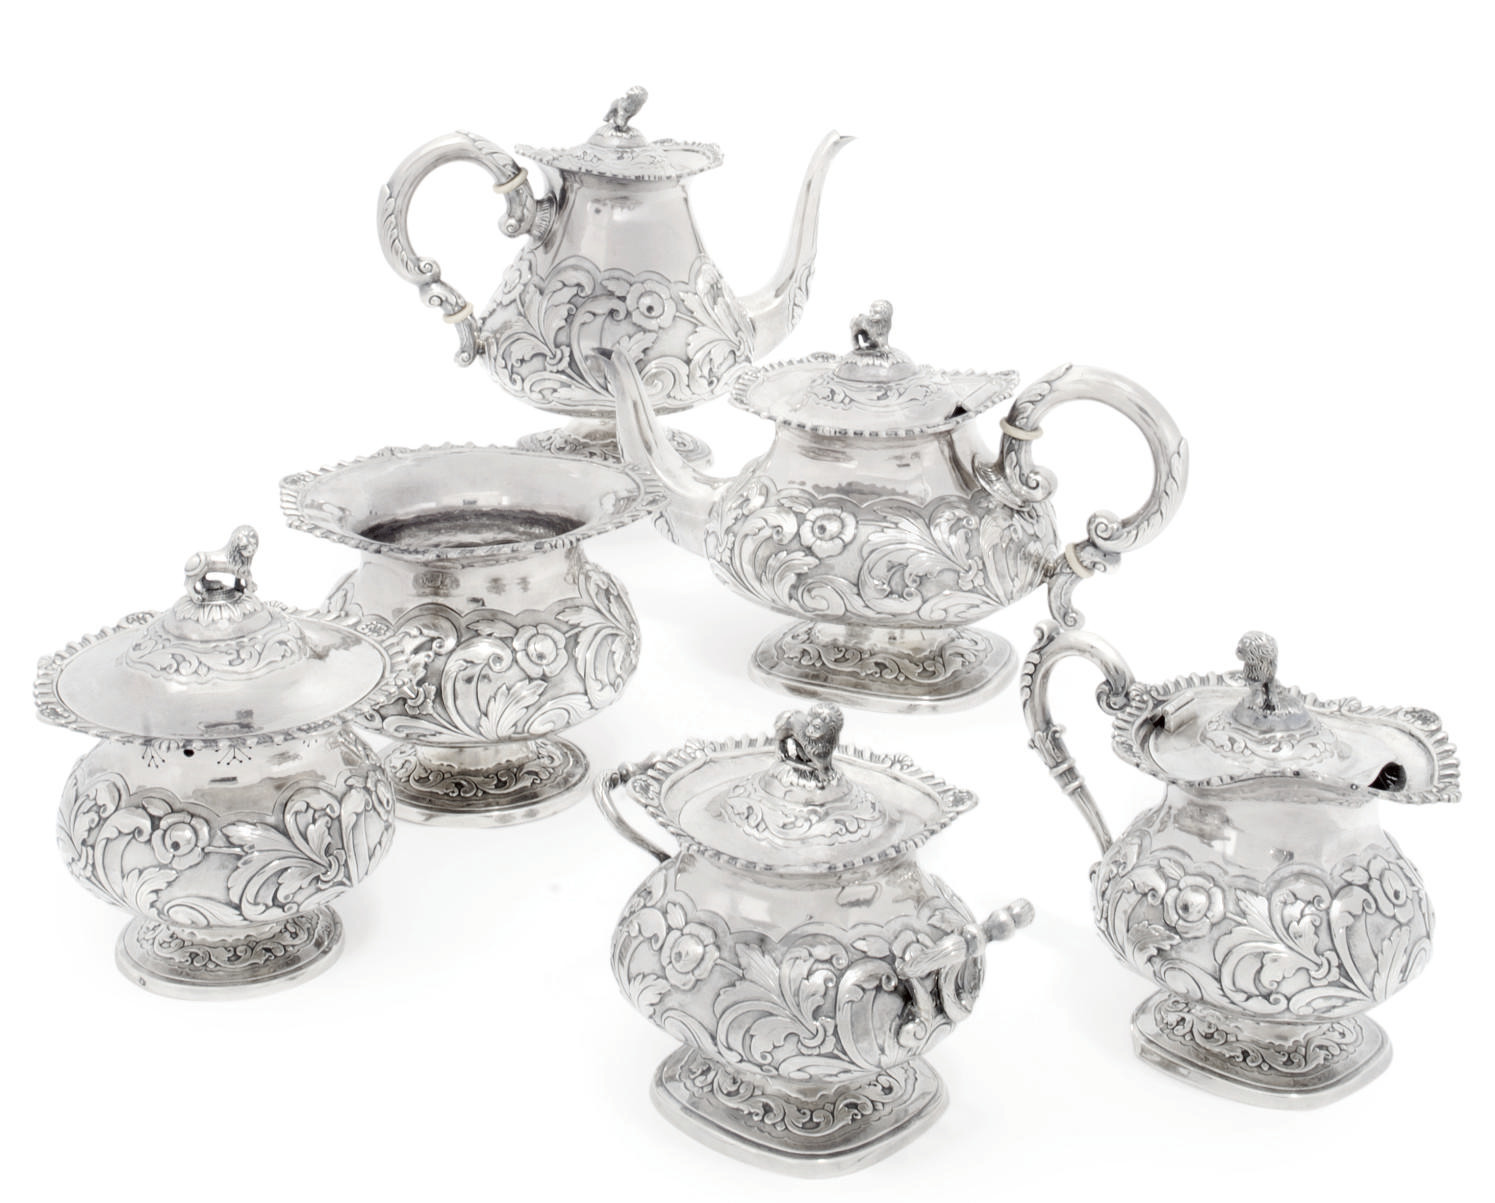 A PORTUGESE SIX-PIECE SILVER T